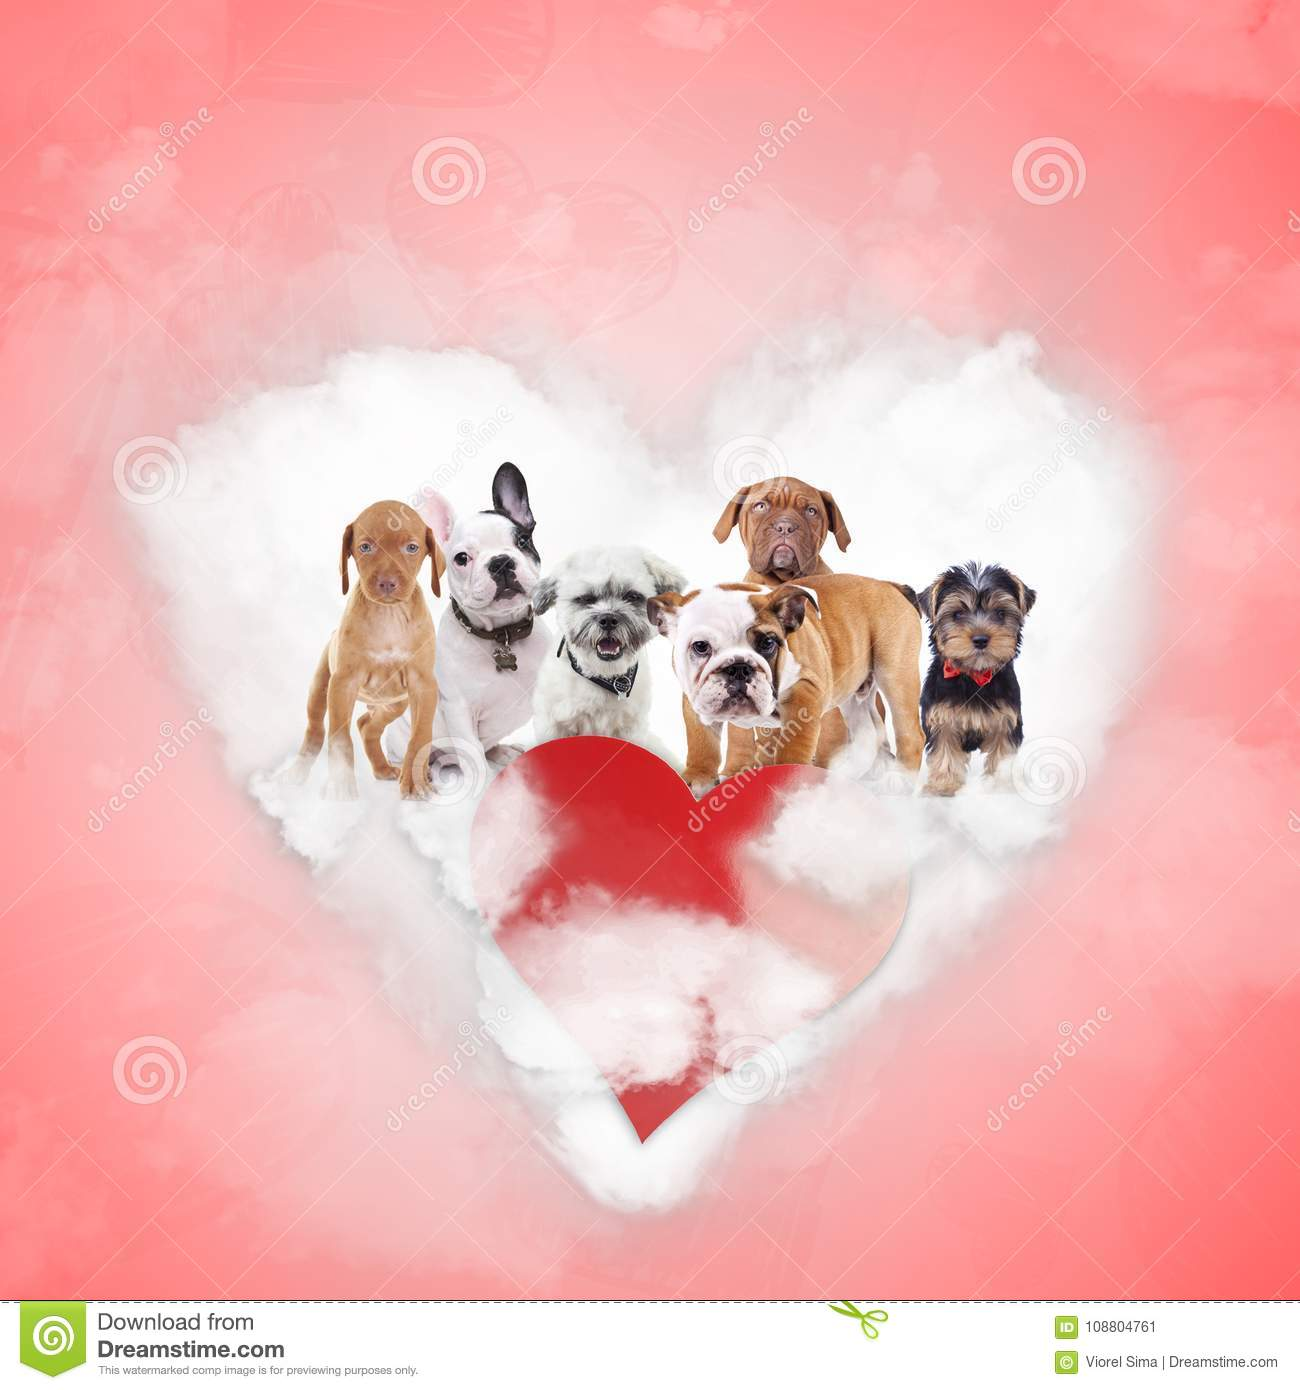 Group of adorable puppies celebrating valentine`s day